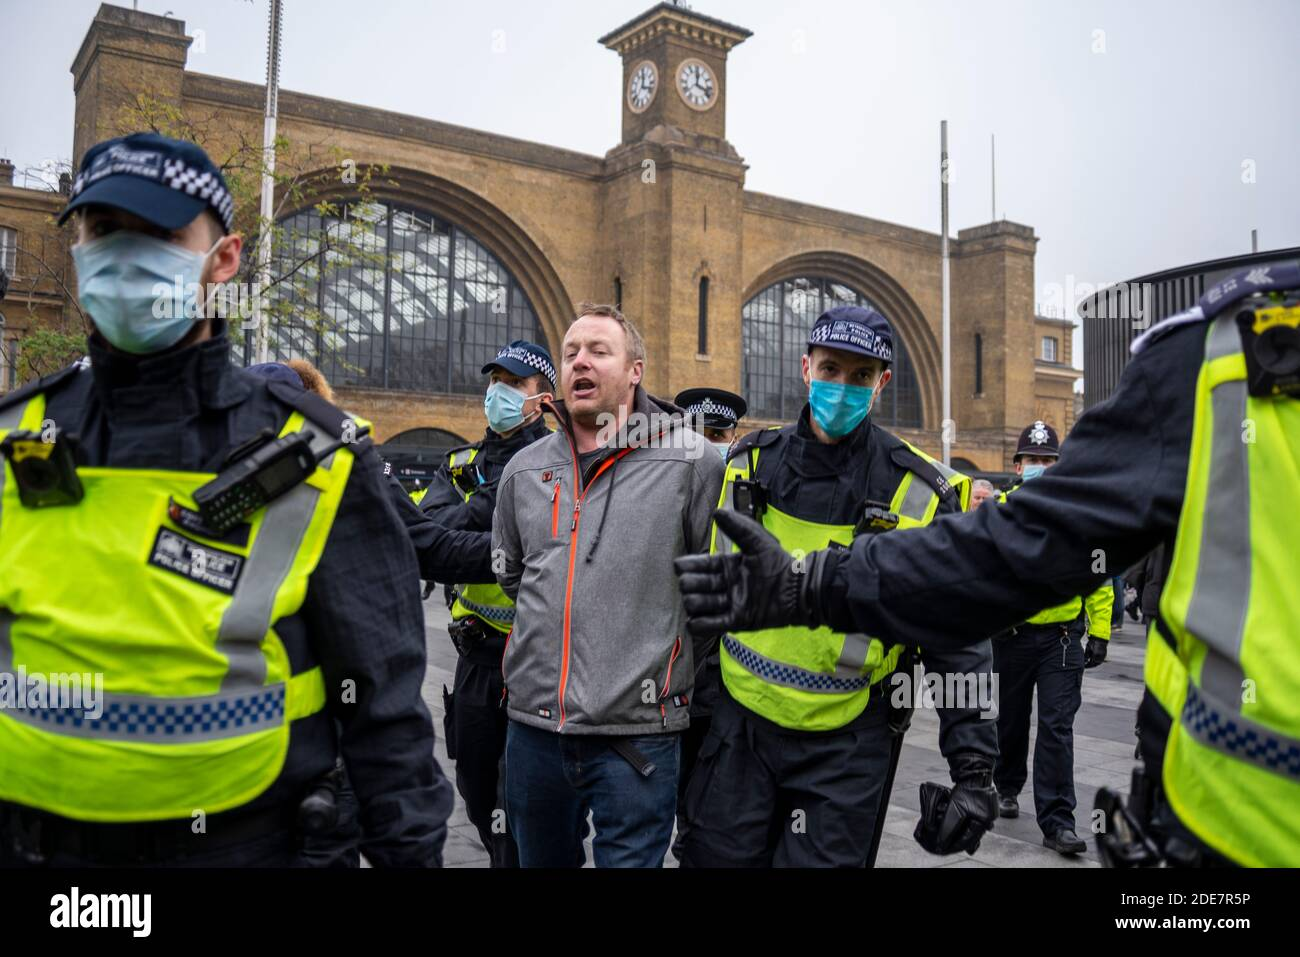 police-arresting-a-protester-outside-kings-cross-station-at-a-covid-19-coronavirus-anti-lockdown-protest-march-in-london-uk-for-being-outside-2DE7R5P.jpg